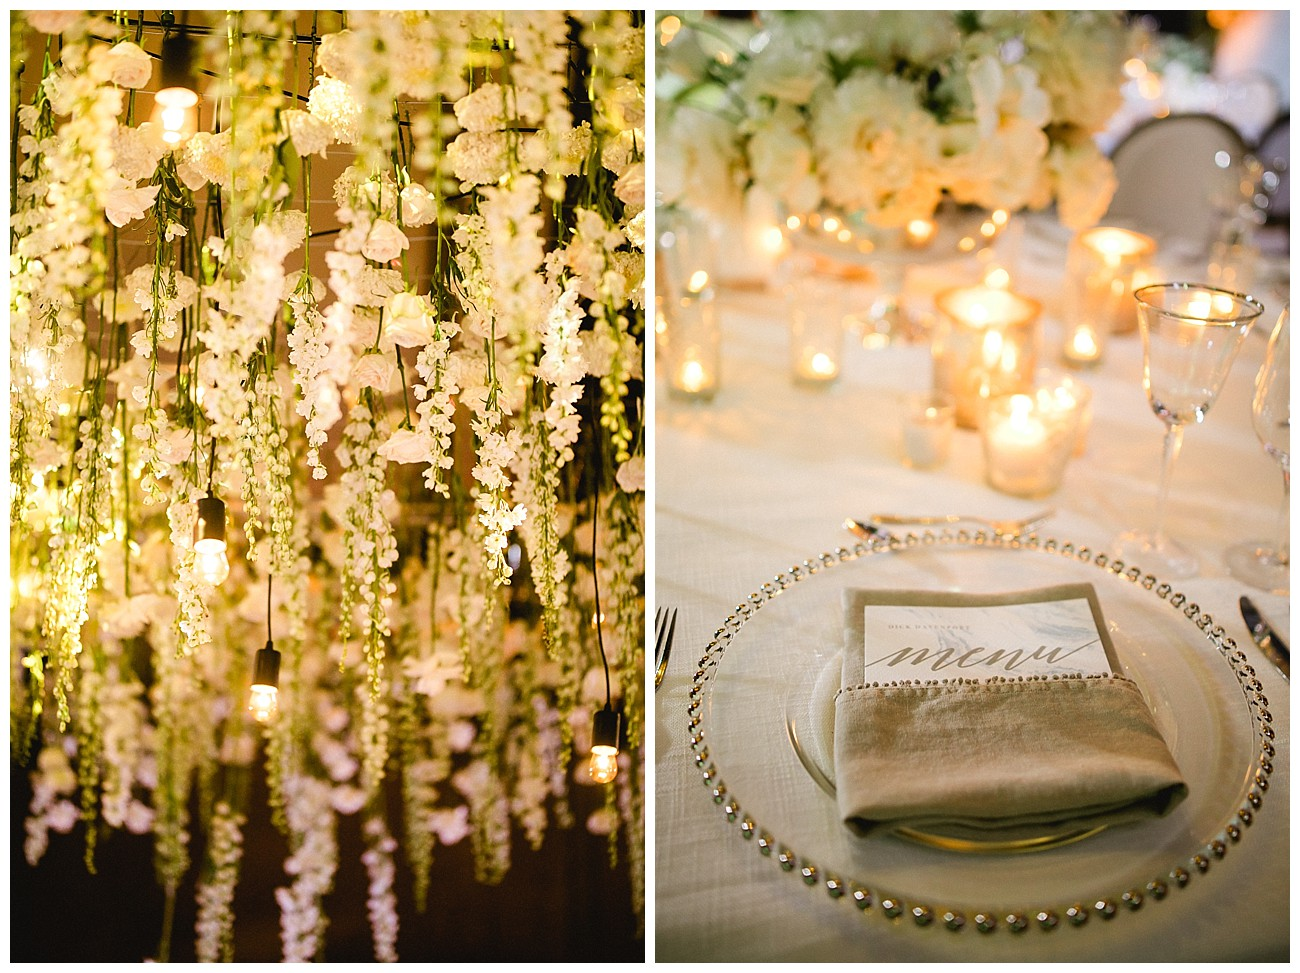 hanging flowers and delicate table settings at white floral theme for a wedding at JW Marriott San Jose del Cabo